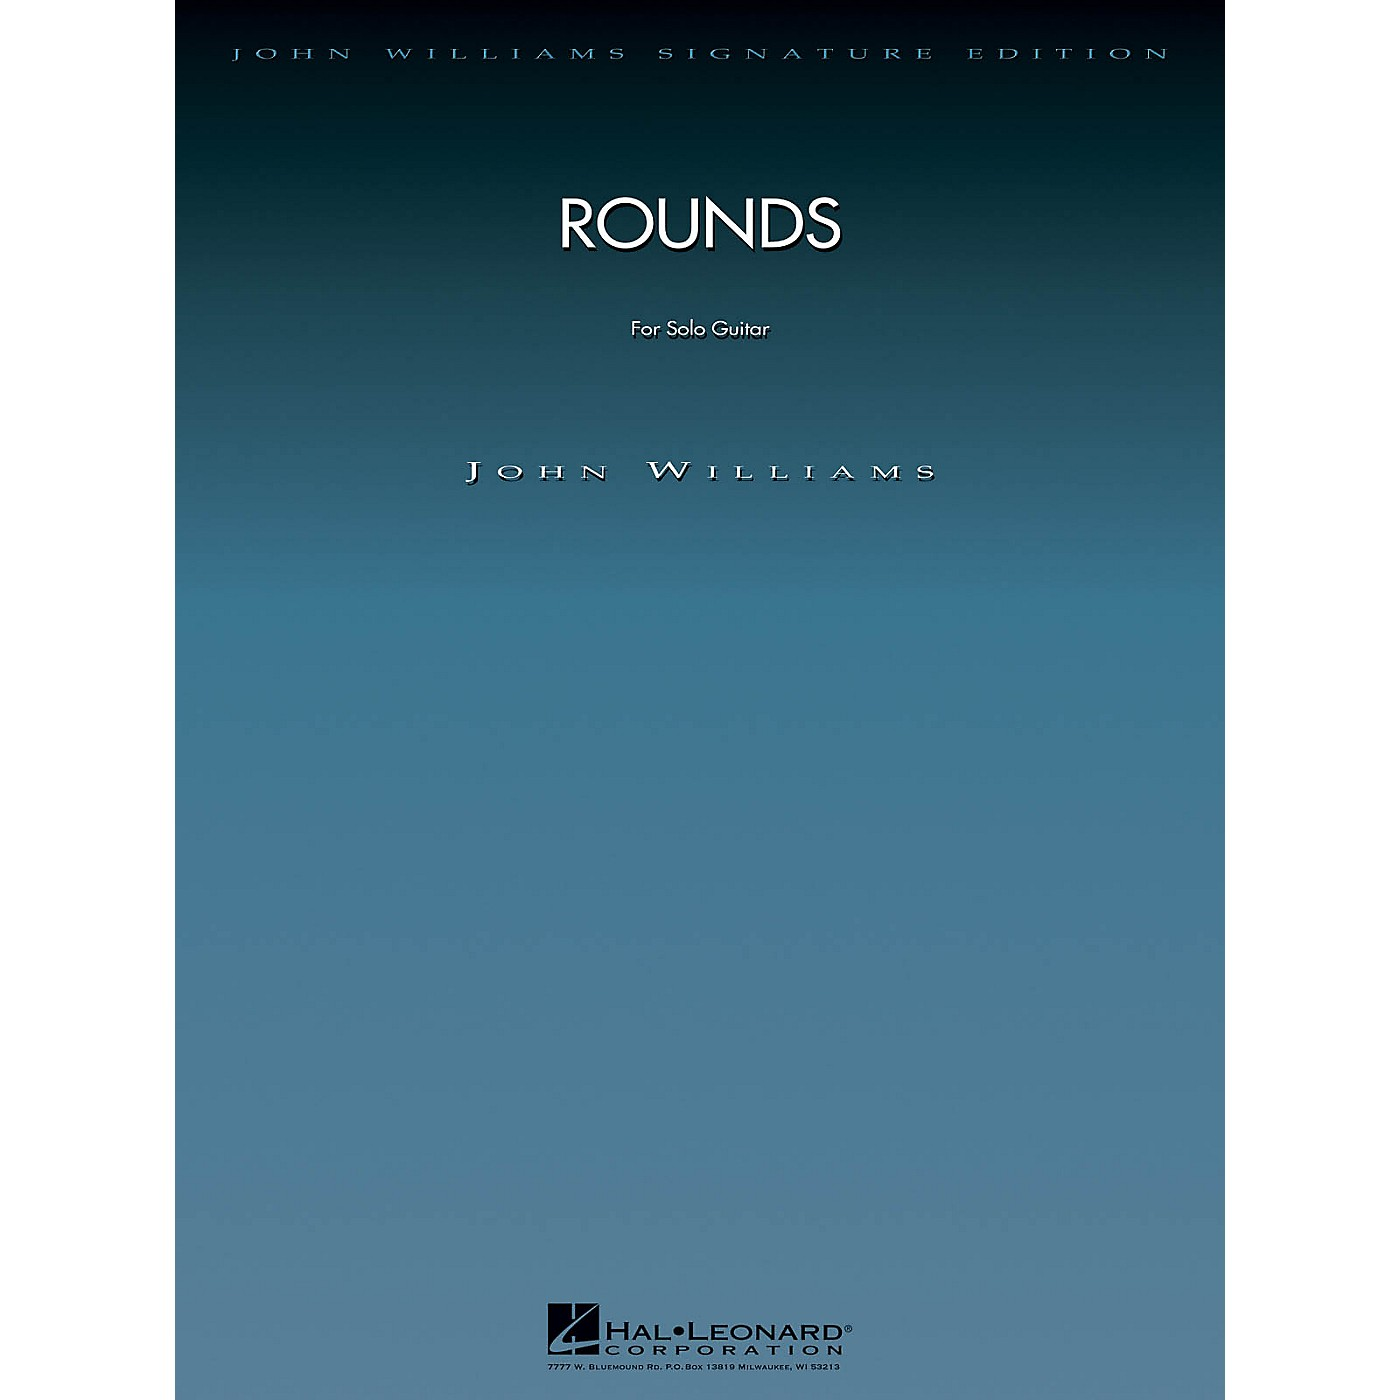 Hal Leonard Rounds (for Solo Guitar) John Williams Signature Edition - Strings Series Softcover thumbnail